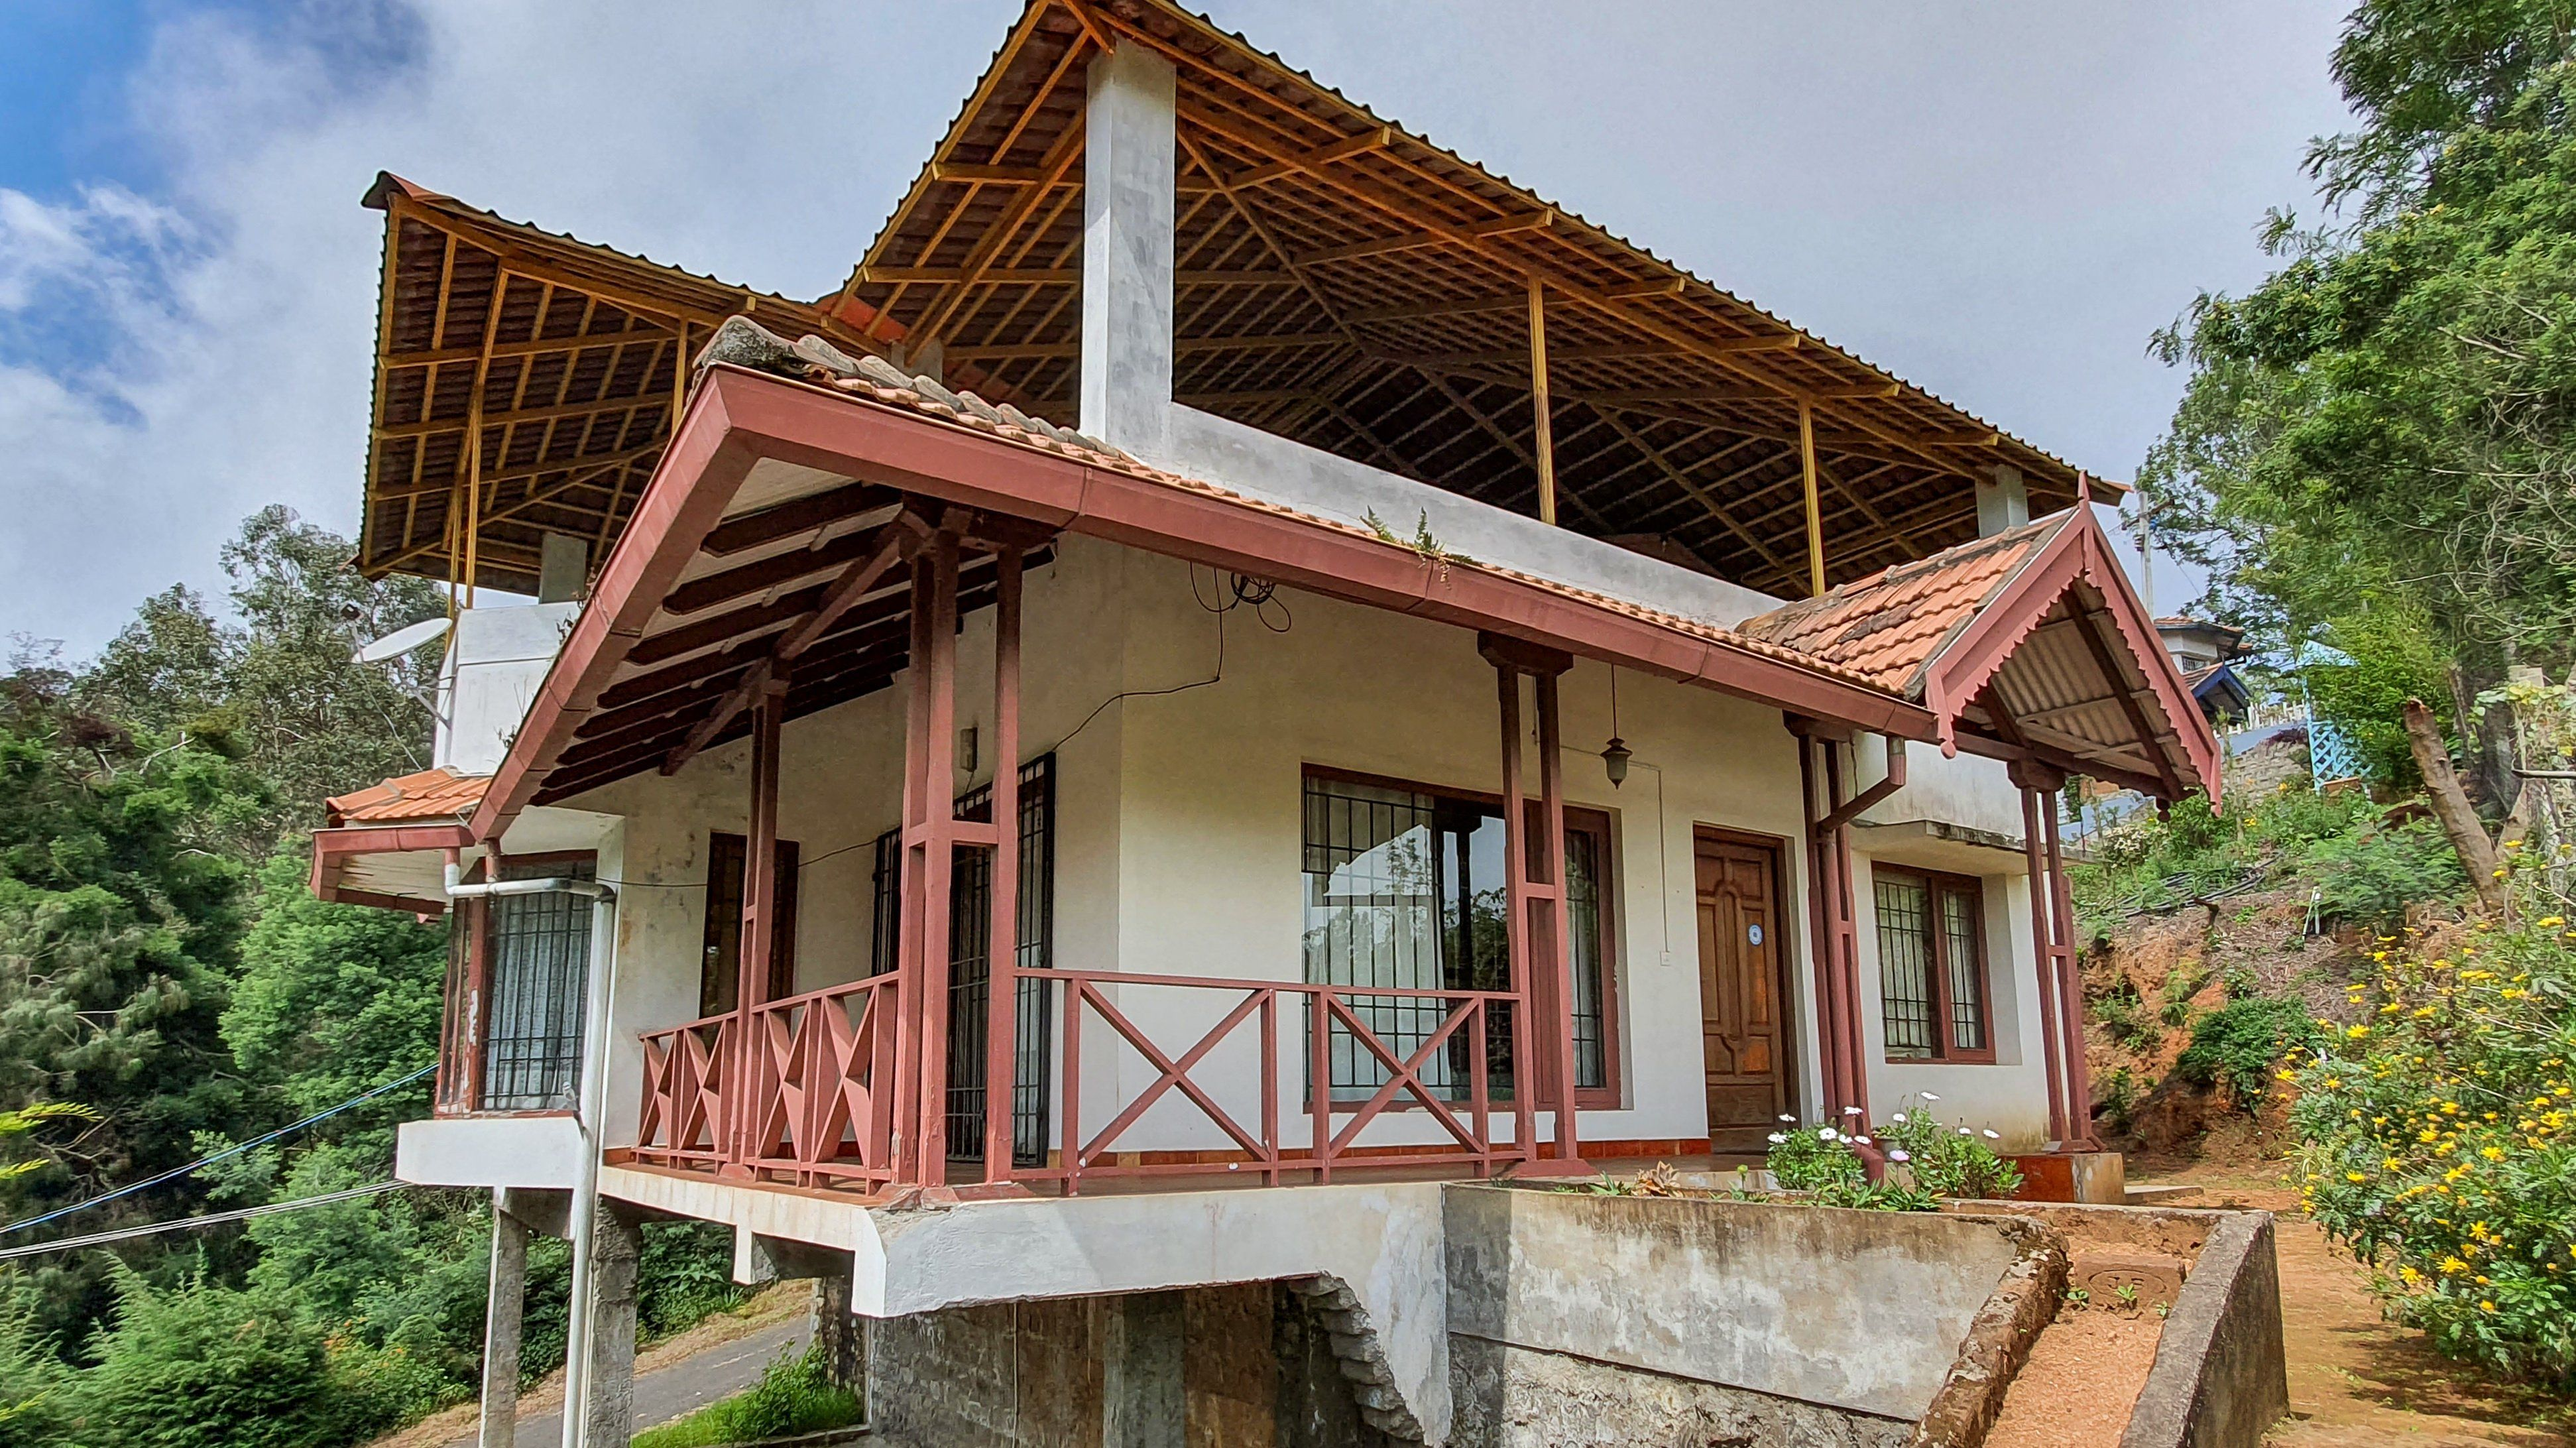 Alcote - Cottage for sale in Coonoor Bettati, Nilgiris - India